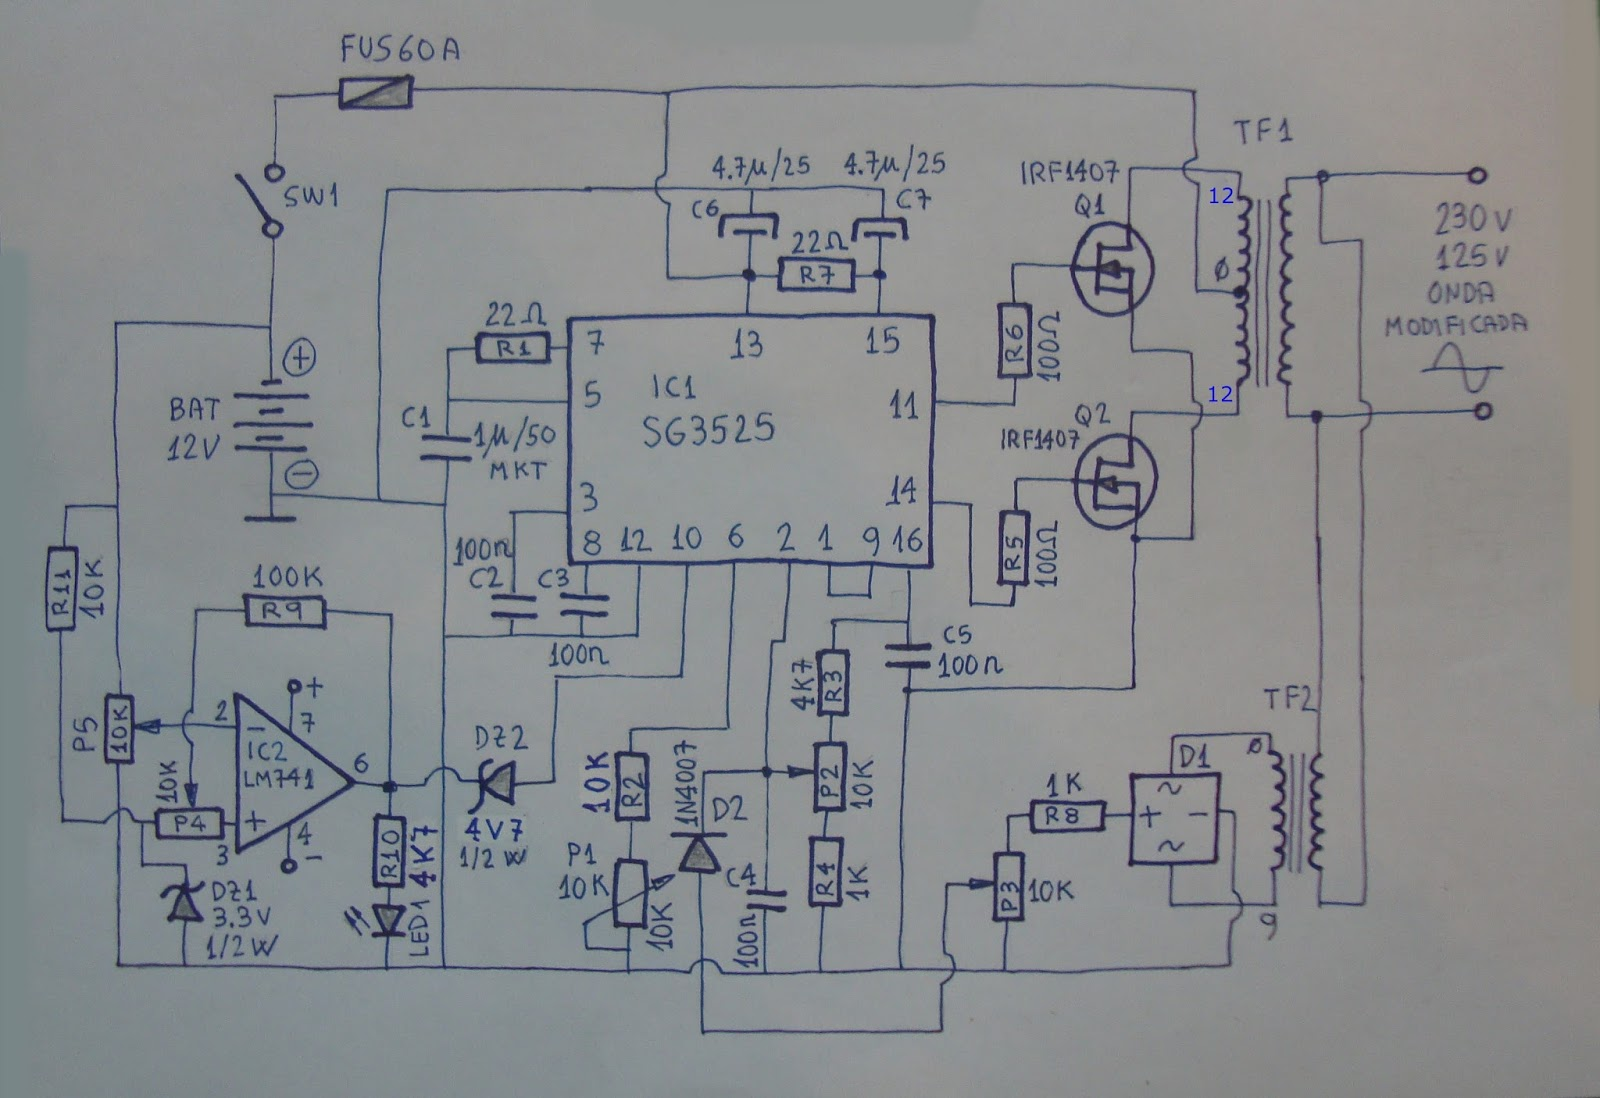 File Nand Gate En moreover Inversor 12v 110220v 600w Parte 22 as well Diy Power Bank Circuit Diagram Using 7805 in addition Get Grounded besides Plug and play grid tie inverters. on circuit diagram of inverter